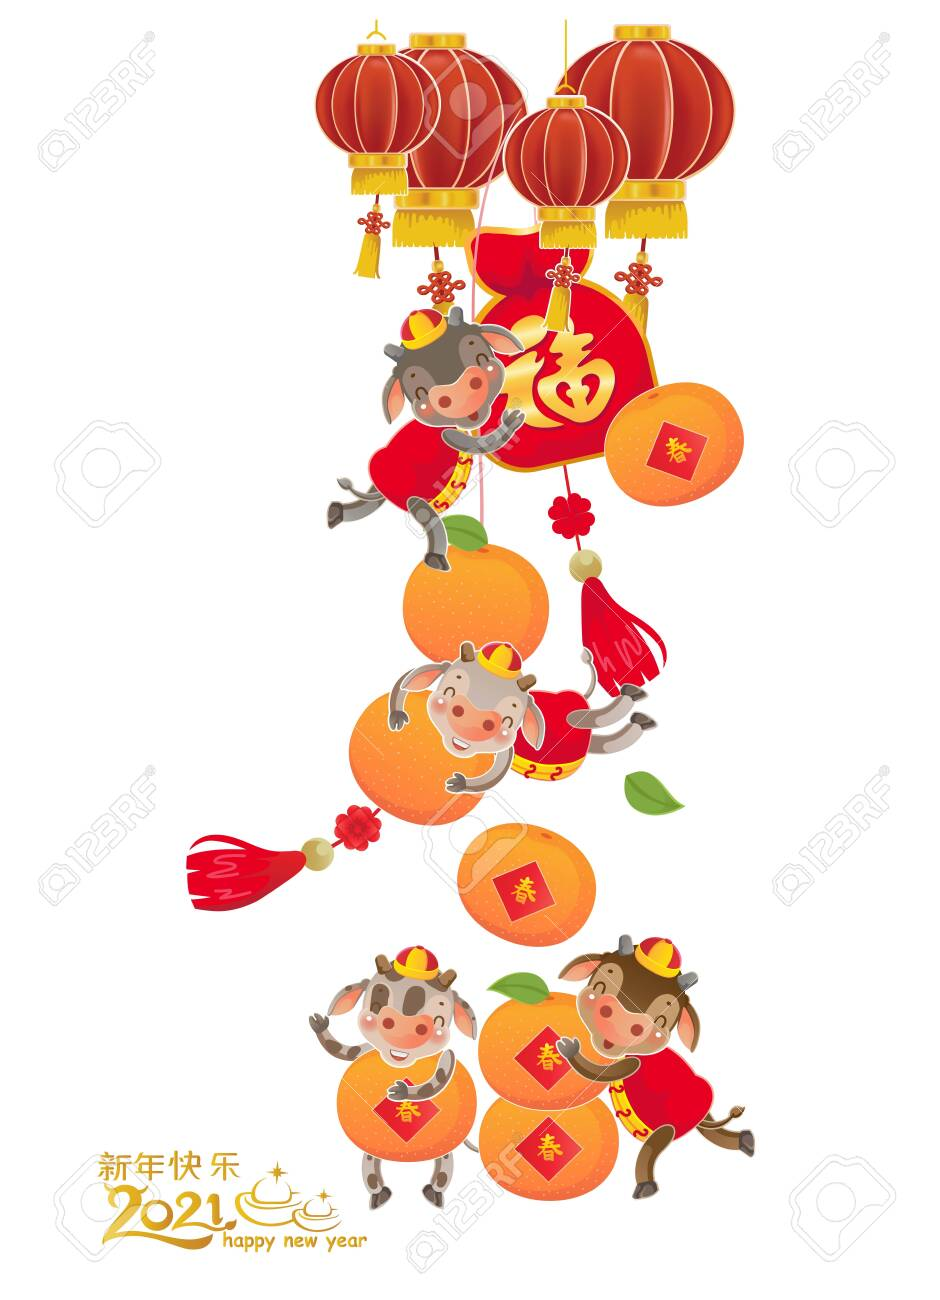 chinese new year 2021 calendar zodiac of ox character traditional the royalty free cliparts vectors and stock illustration image 154565861 chinese new year 2021 calendar zodiac of ox character traditional the